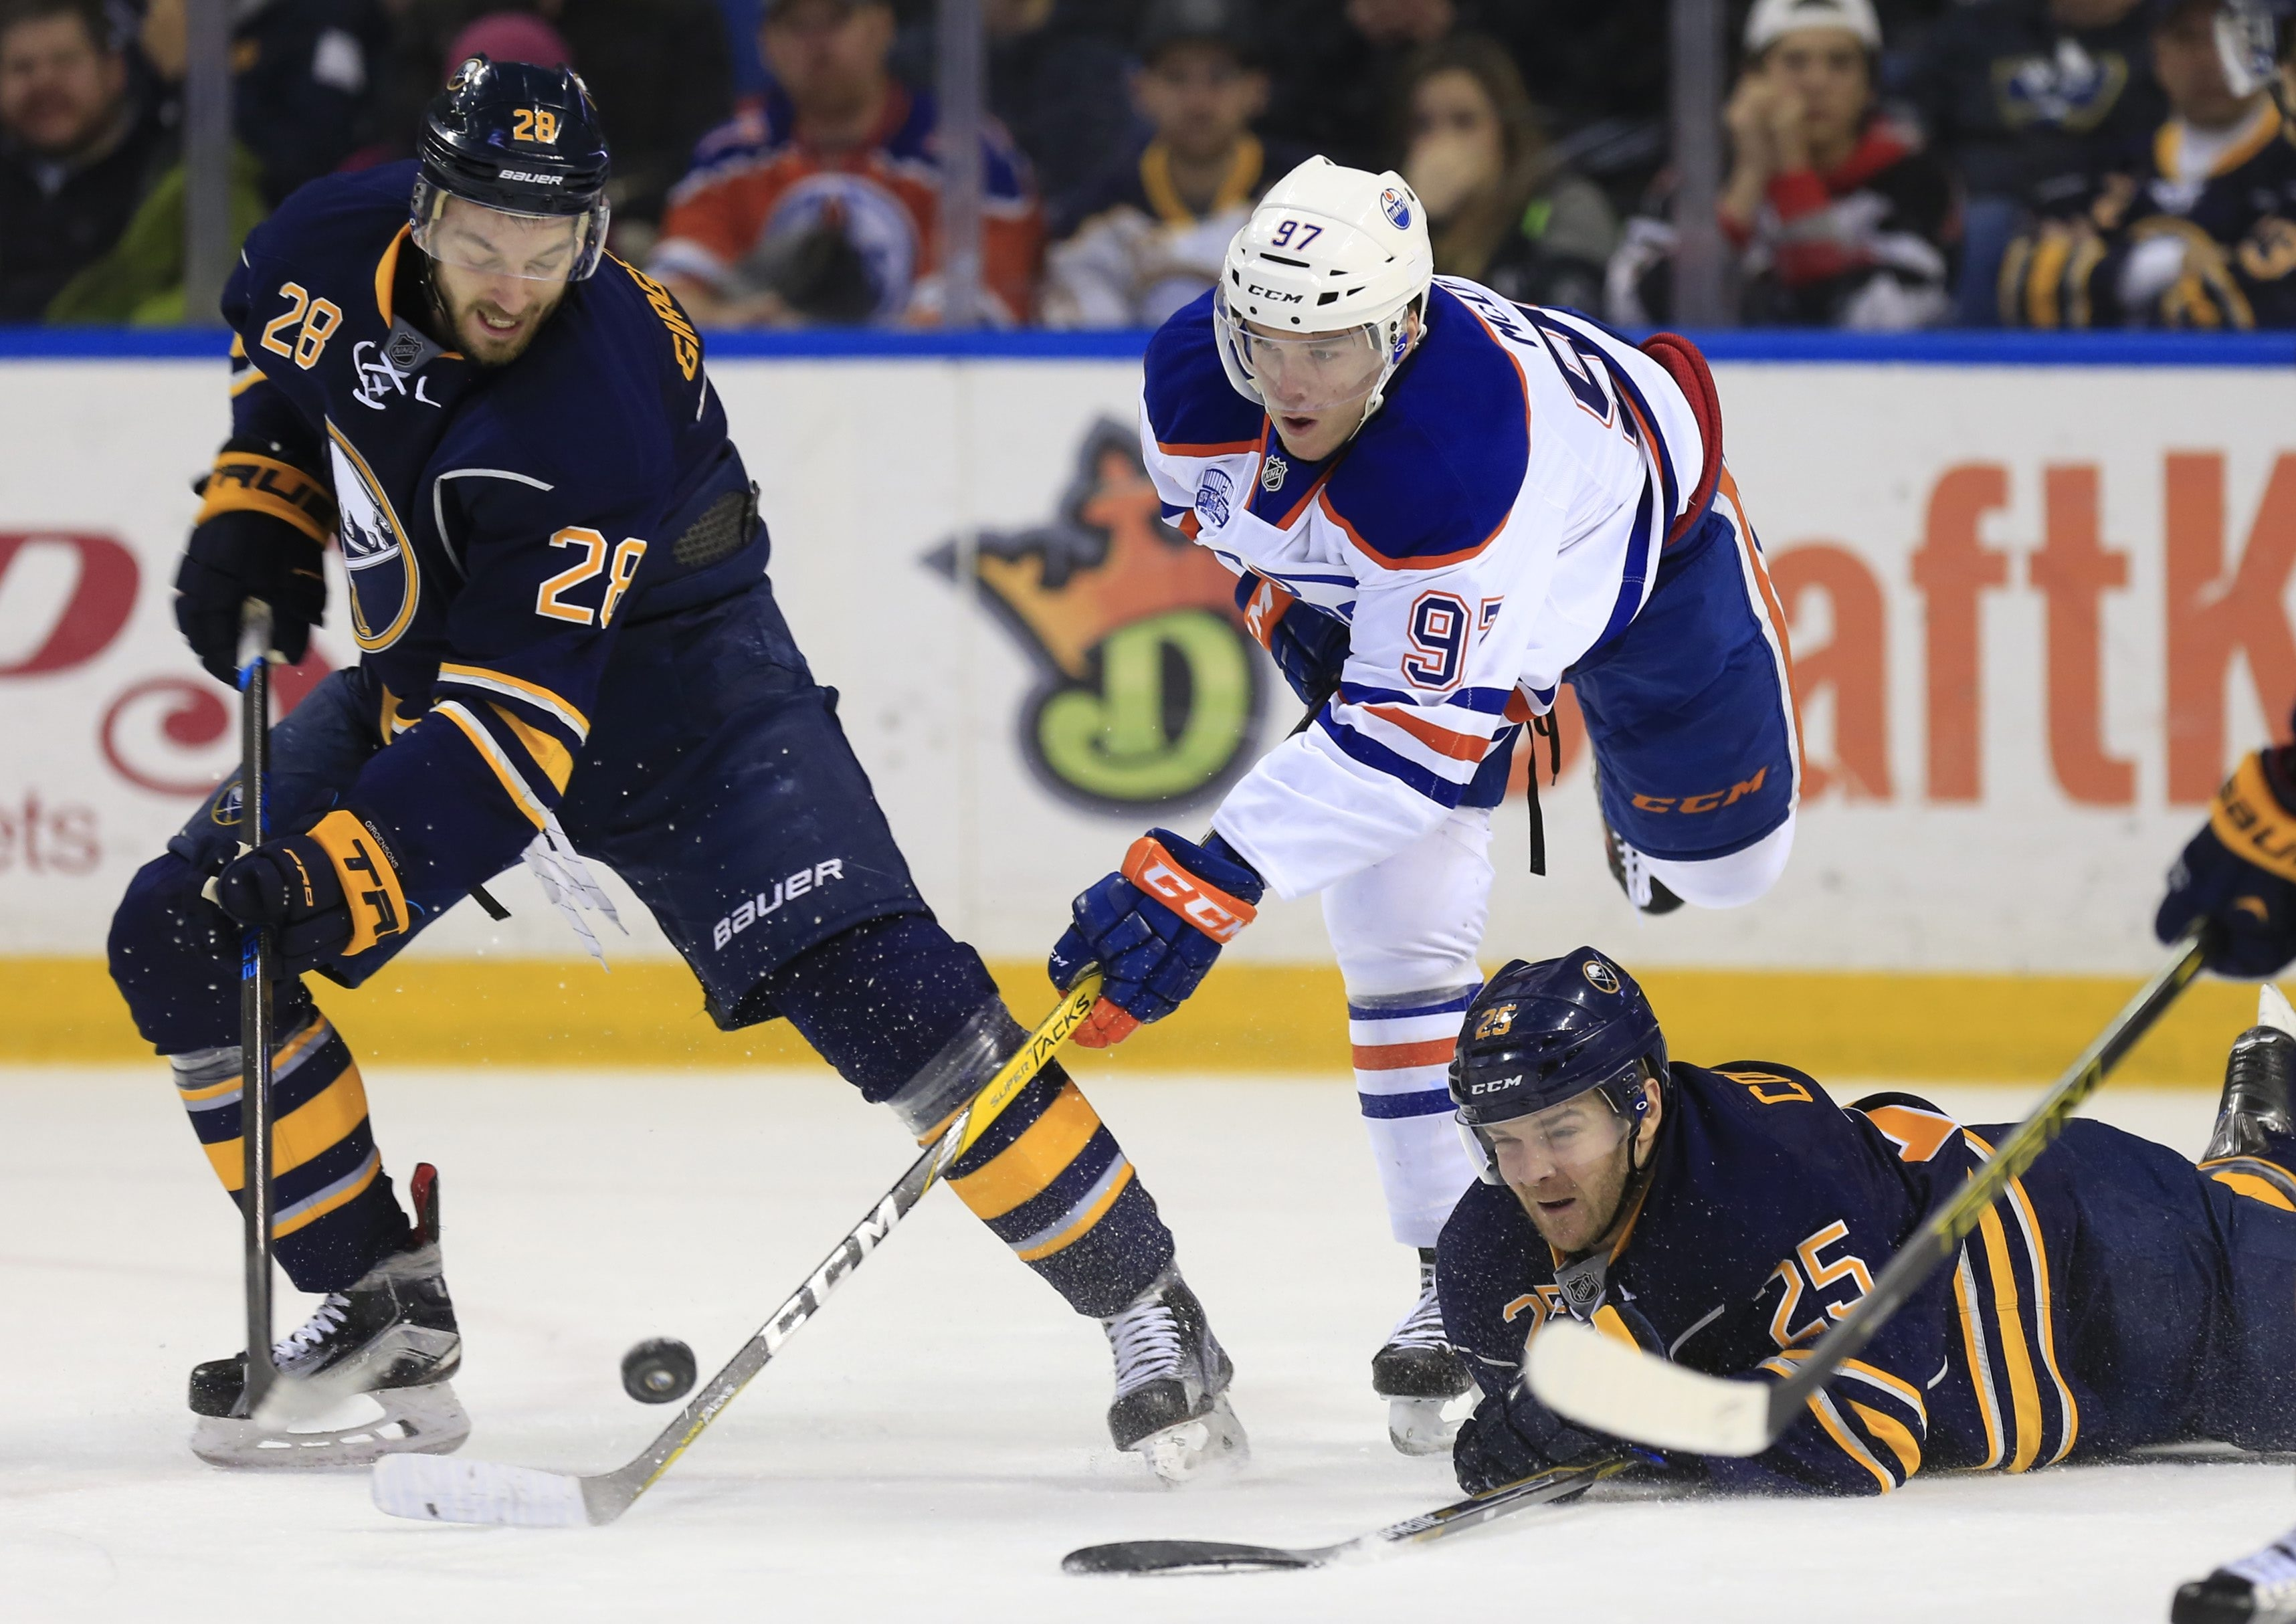 Edmonton's Connor McDavid tries to go after a loose puck between Zemgus Girgensons and a fallen Carlo Colaiacovo in the first period Tuesday at First Niagara Center.